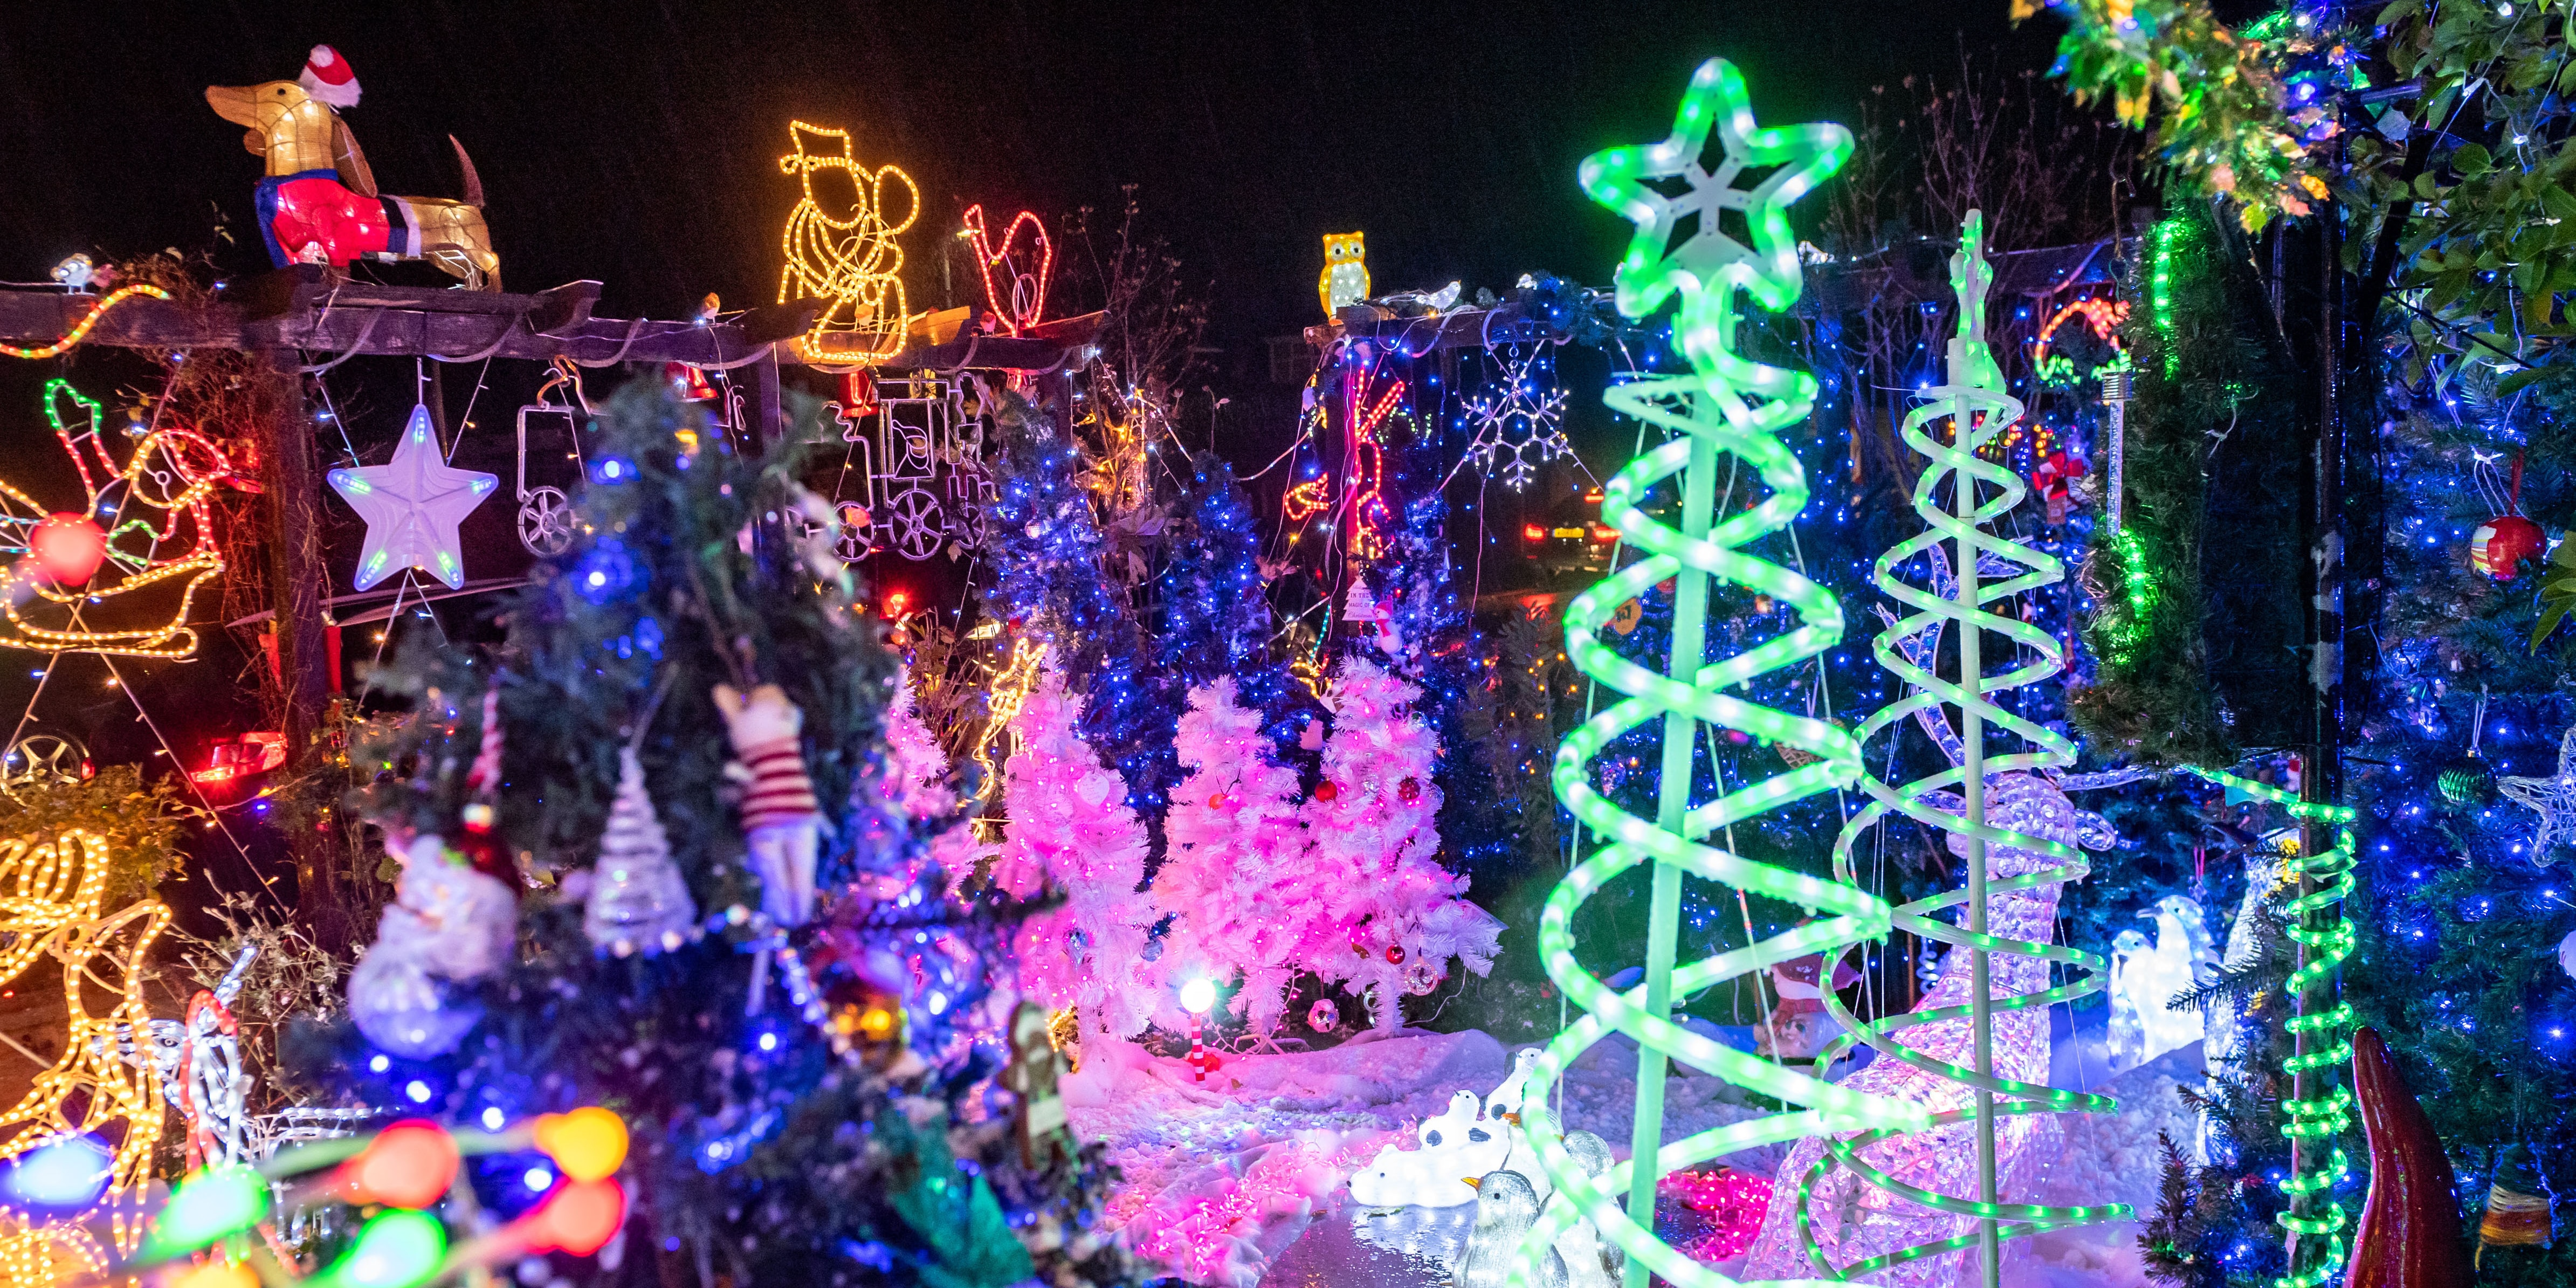 The family has used the attention that the Christmas displays have garnered to help raise money for charities, homeless shelters, and food banks.